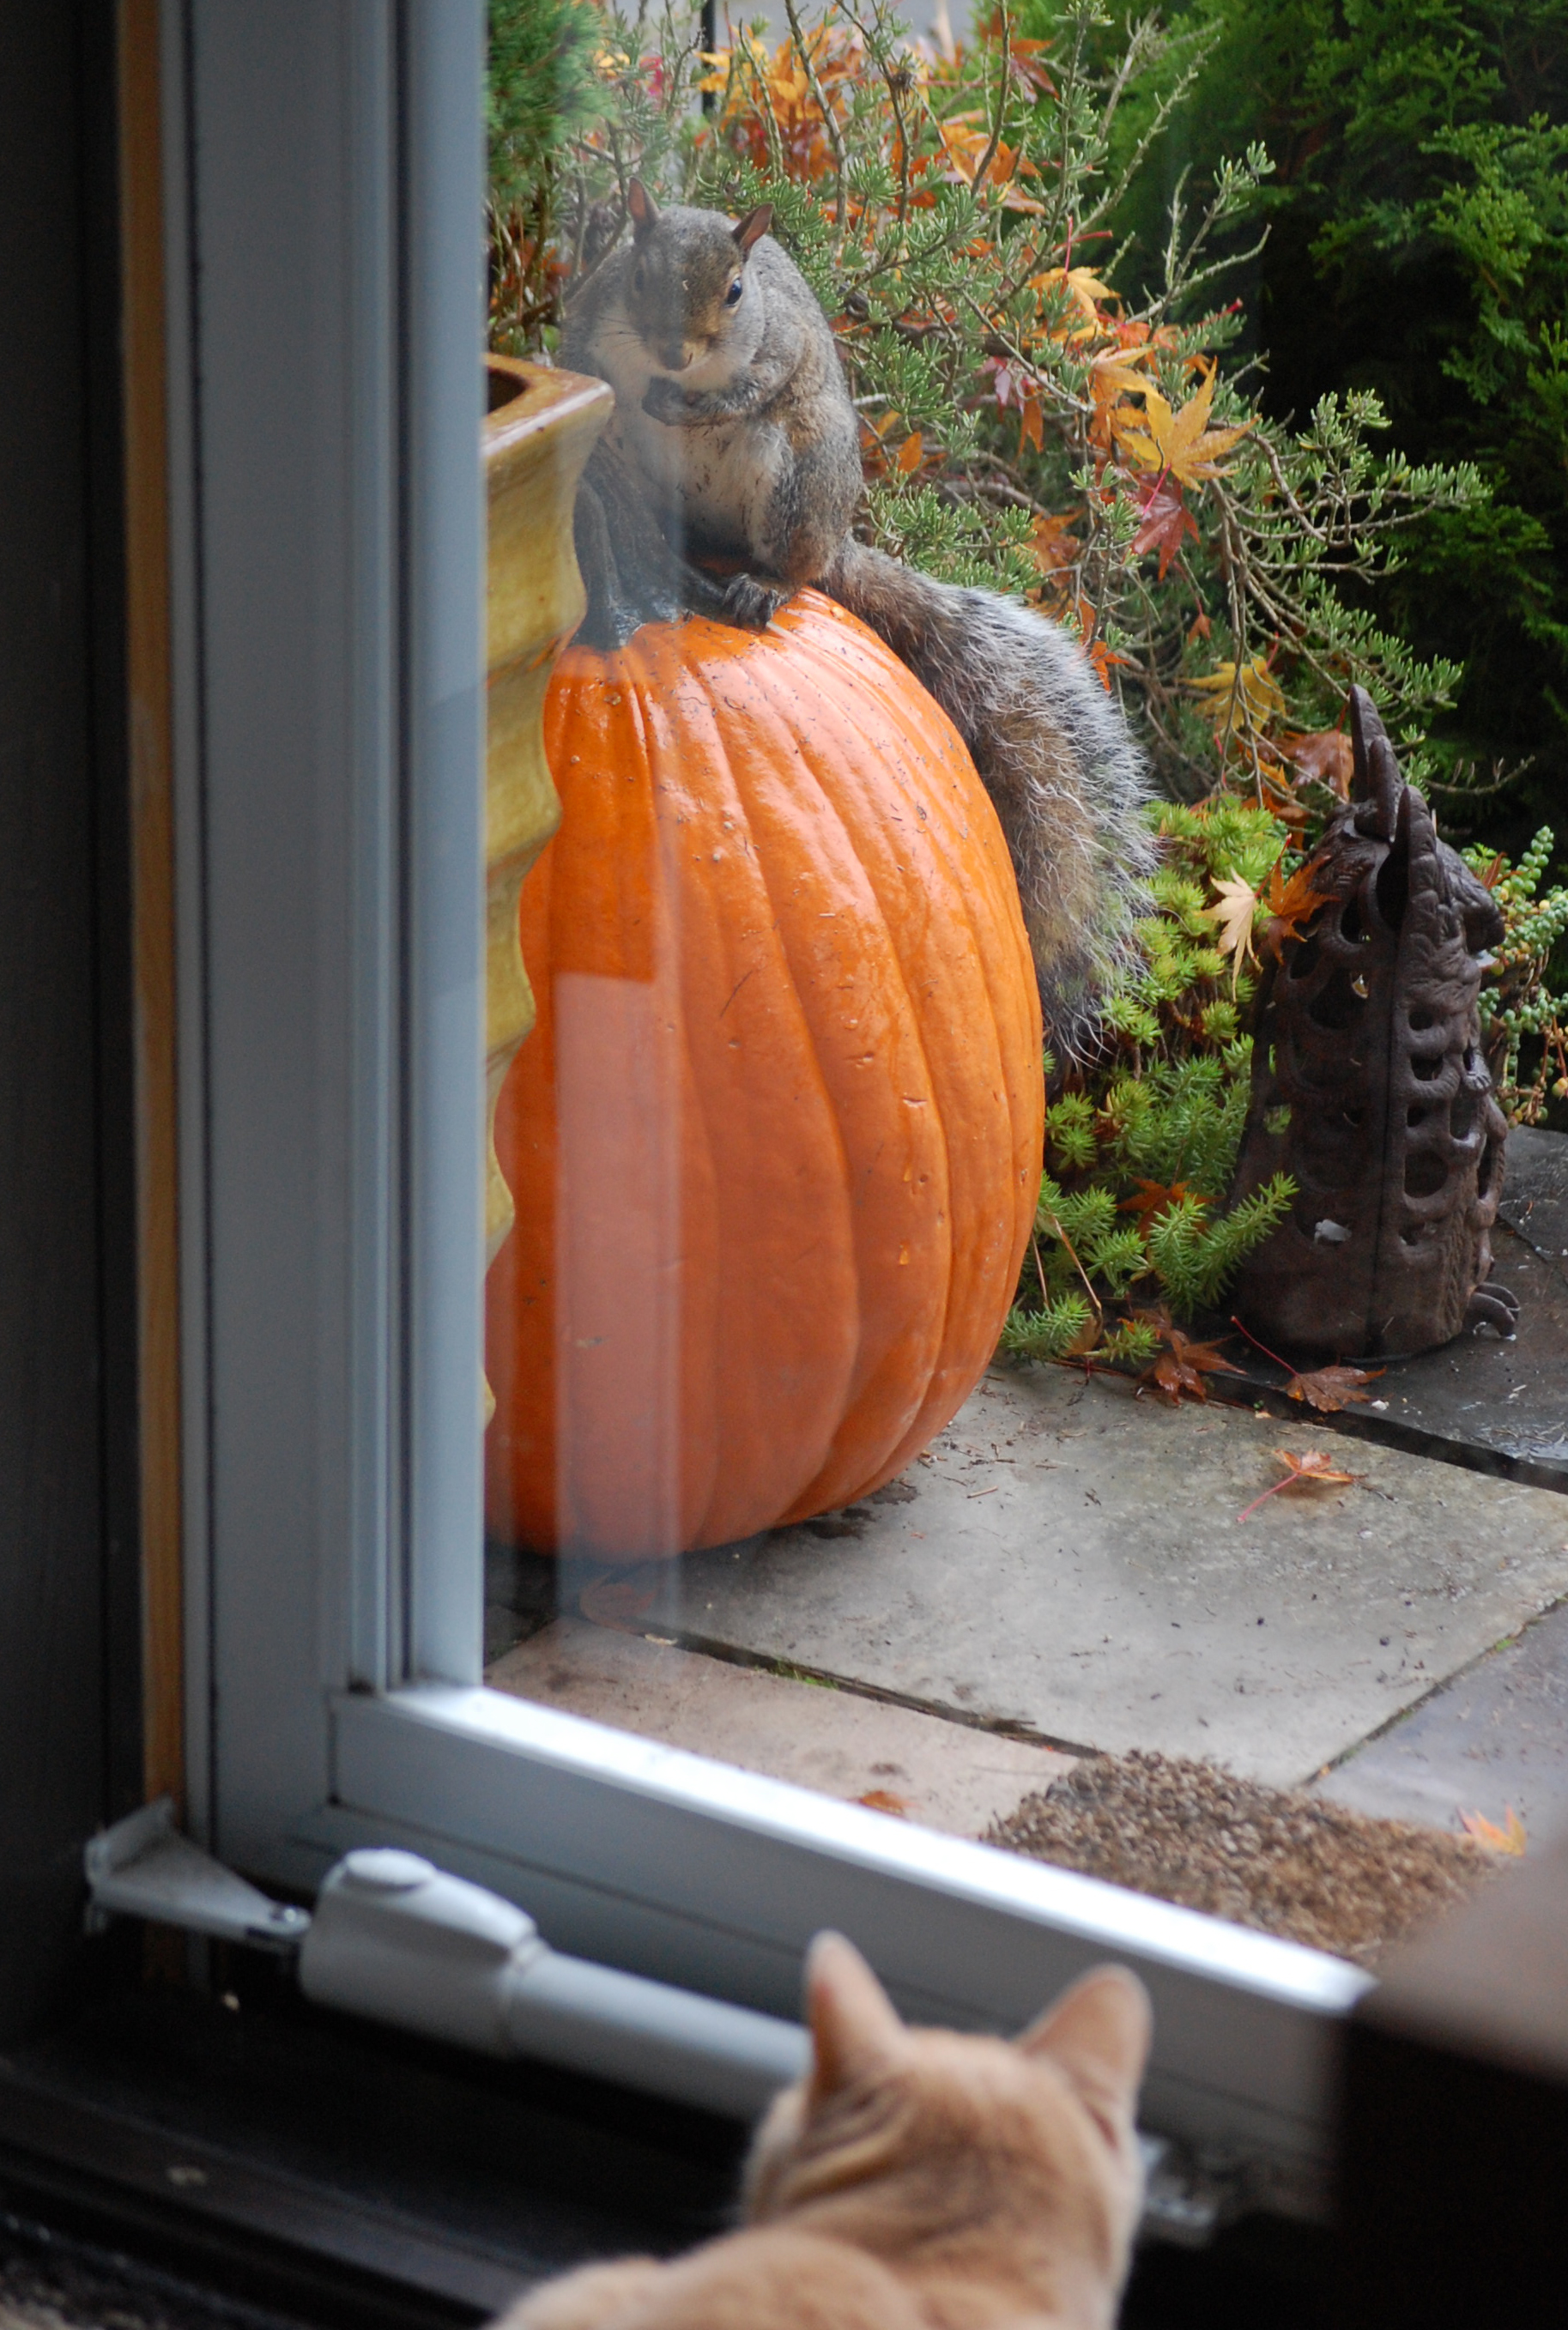 Squirrel on Pumpkin with Cat, ©2013 Rose De Dan www.reikishamanic.com